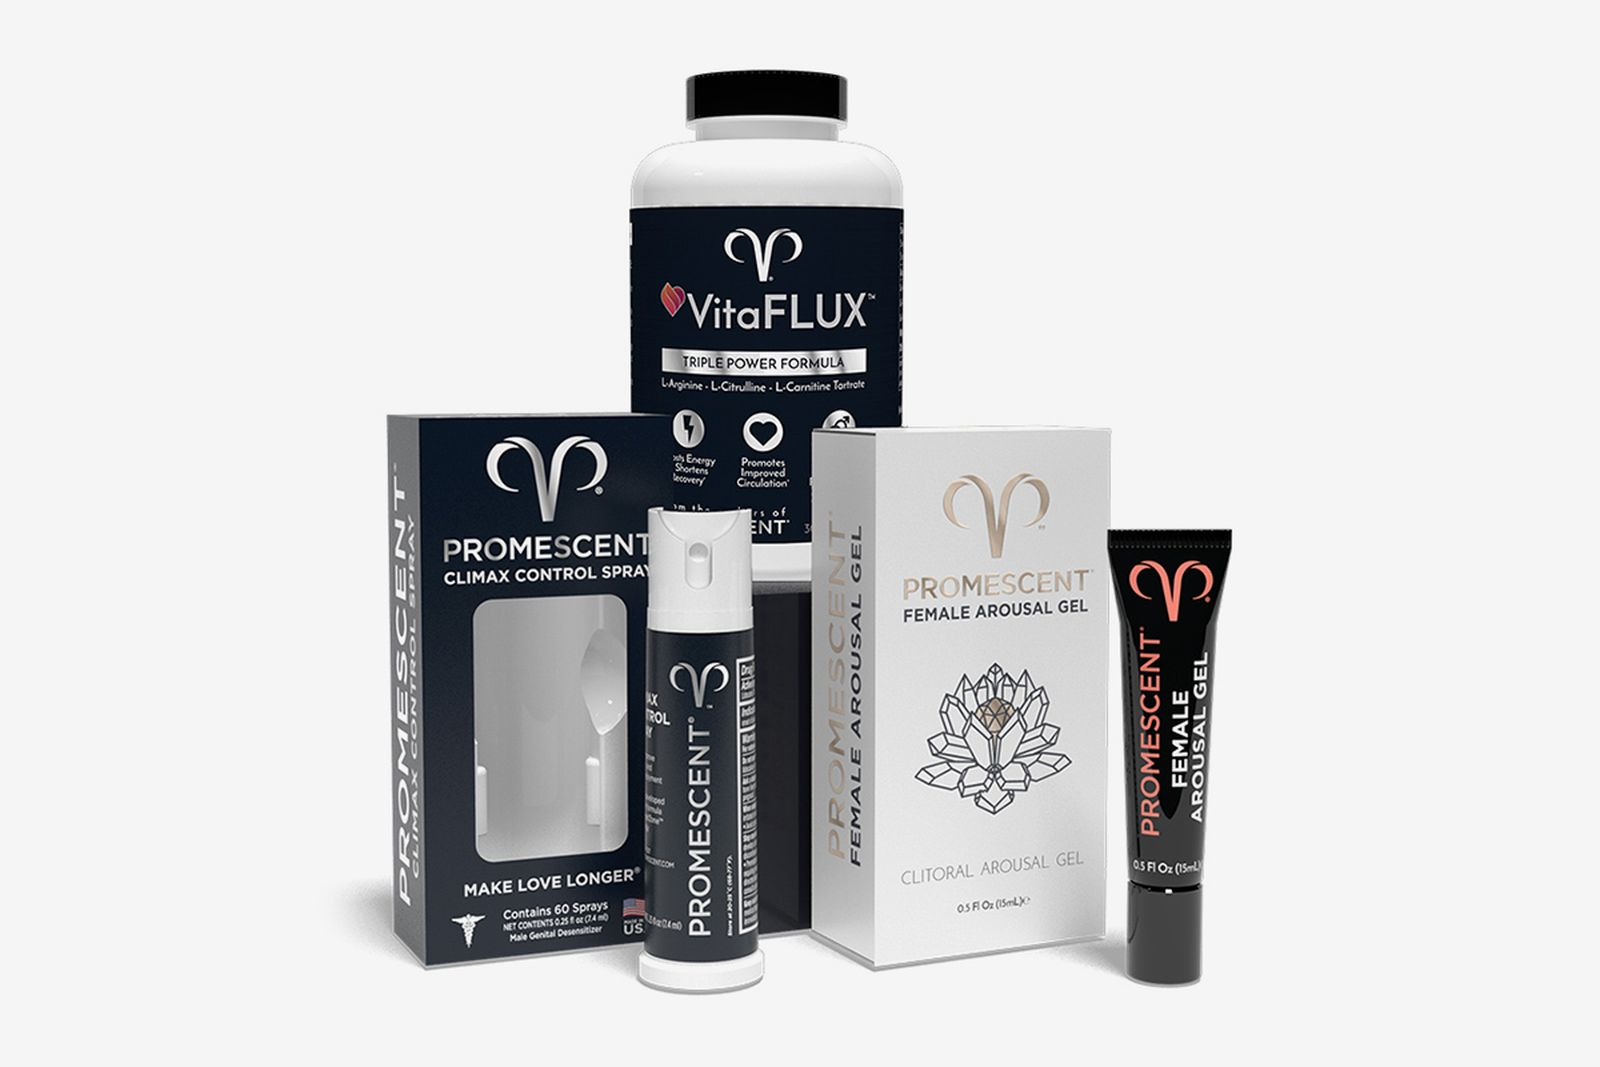 promescent-products-main